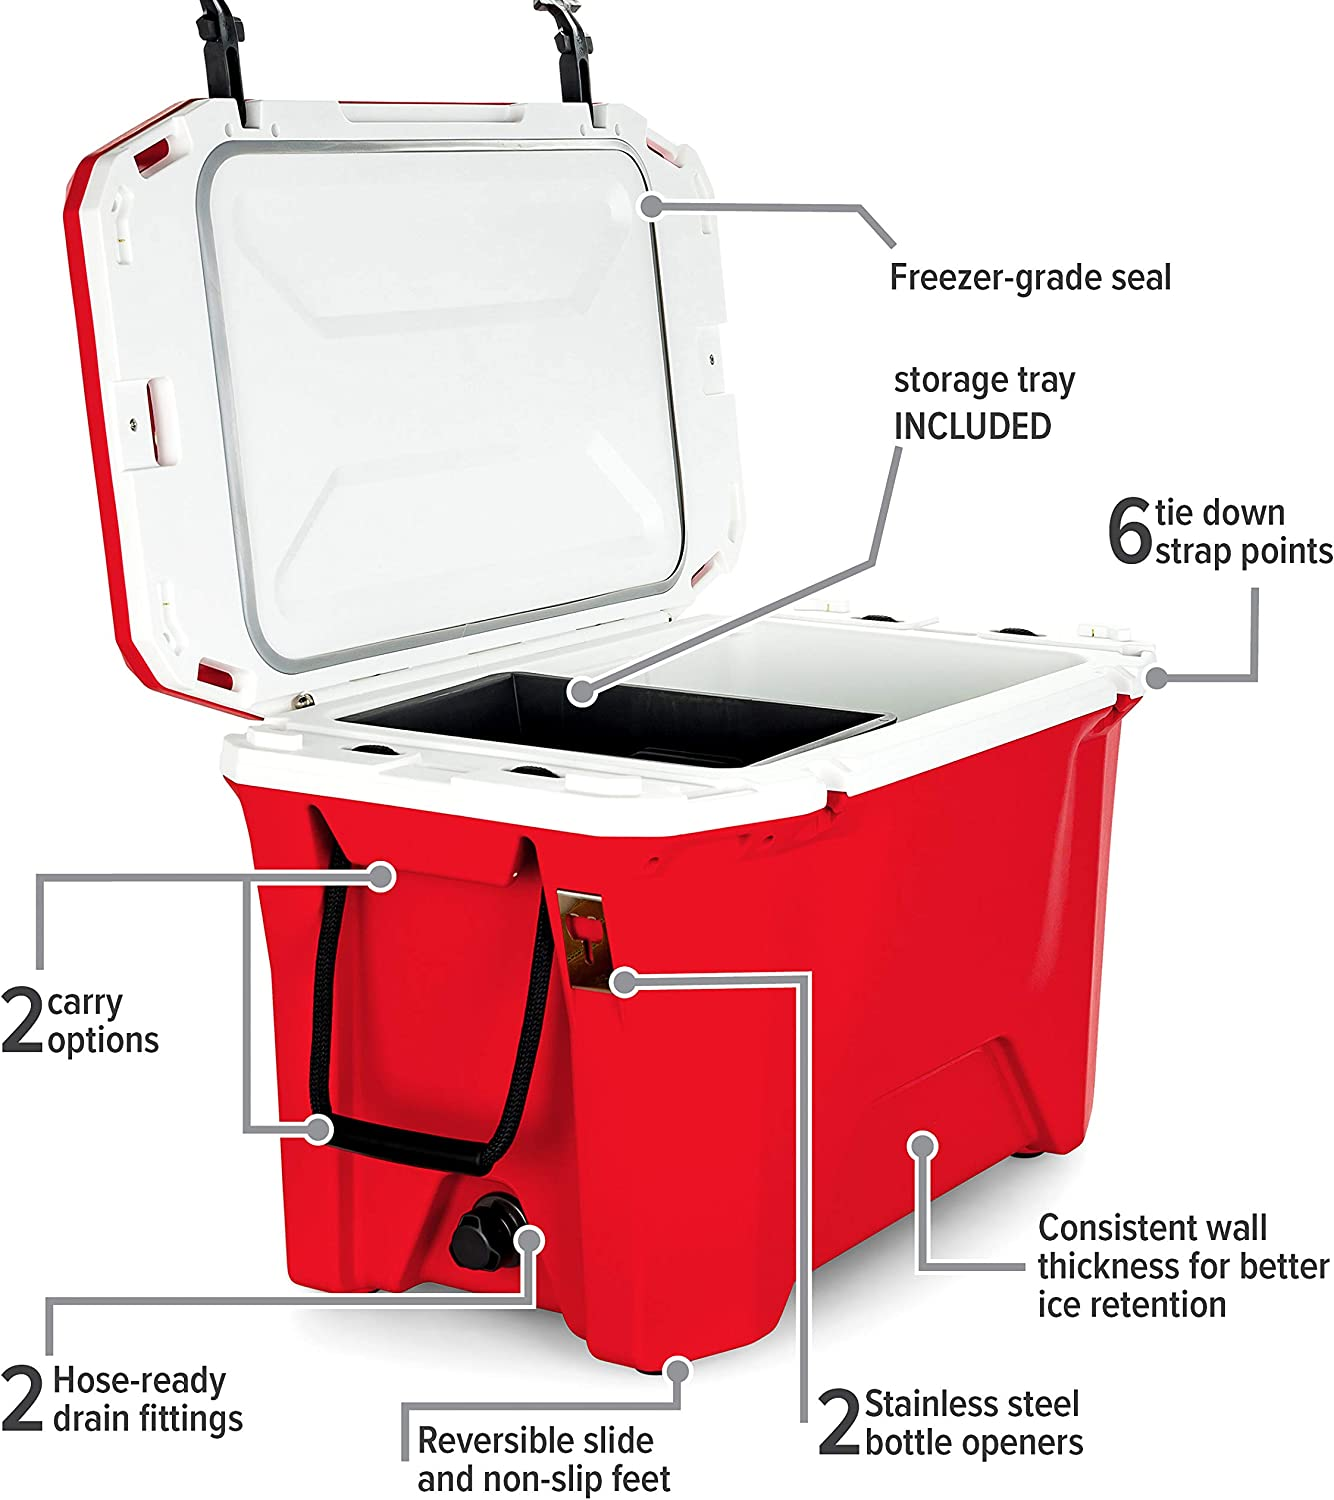 Fits Into the Channels of Your Currituck Cooler to Organize Cooler Contents 50 Qt. Camco Divider for Currituck Coolers 51793 Can Be Used as a Cutting Board